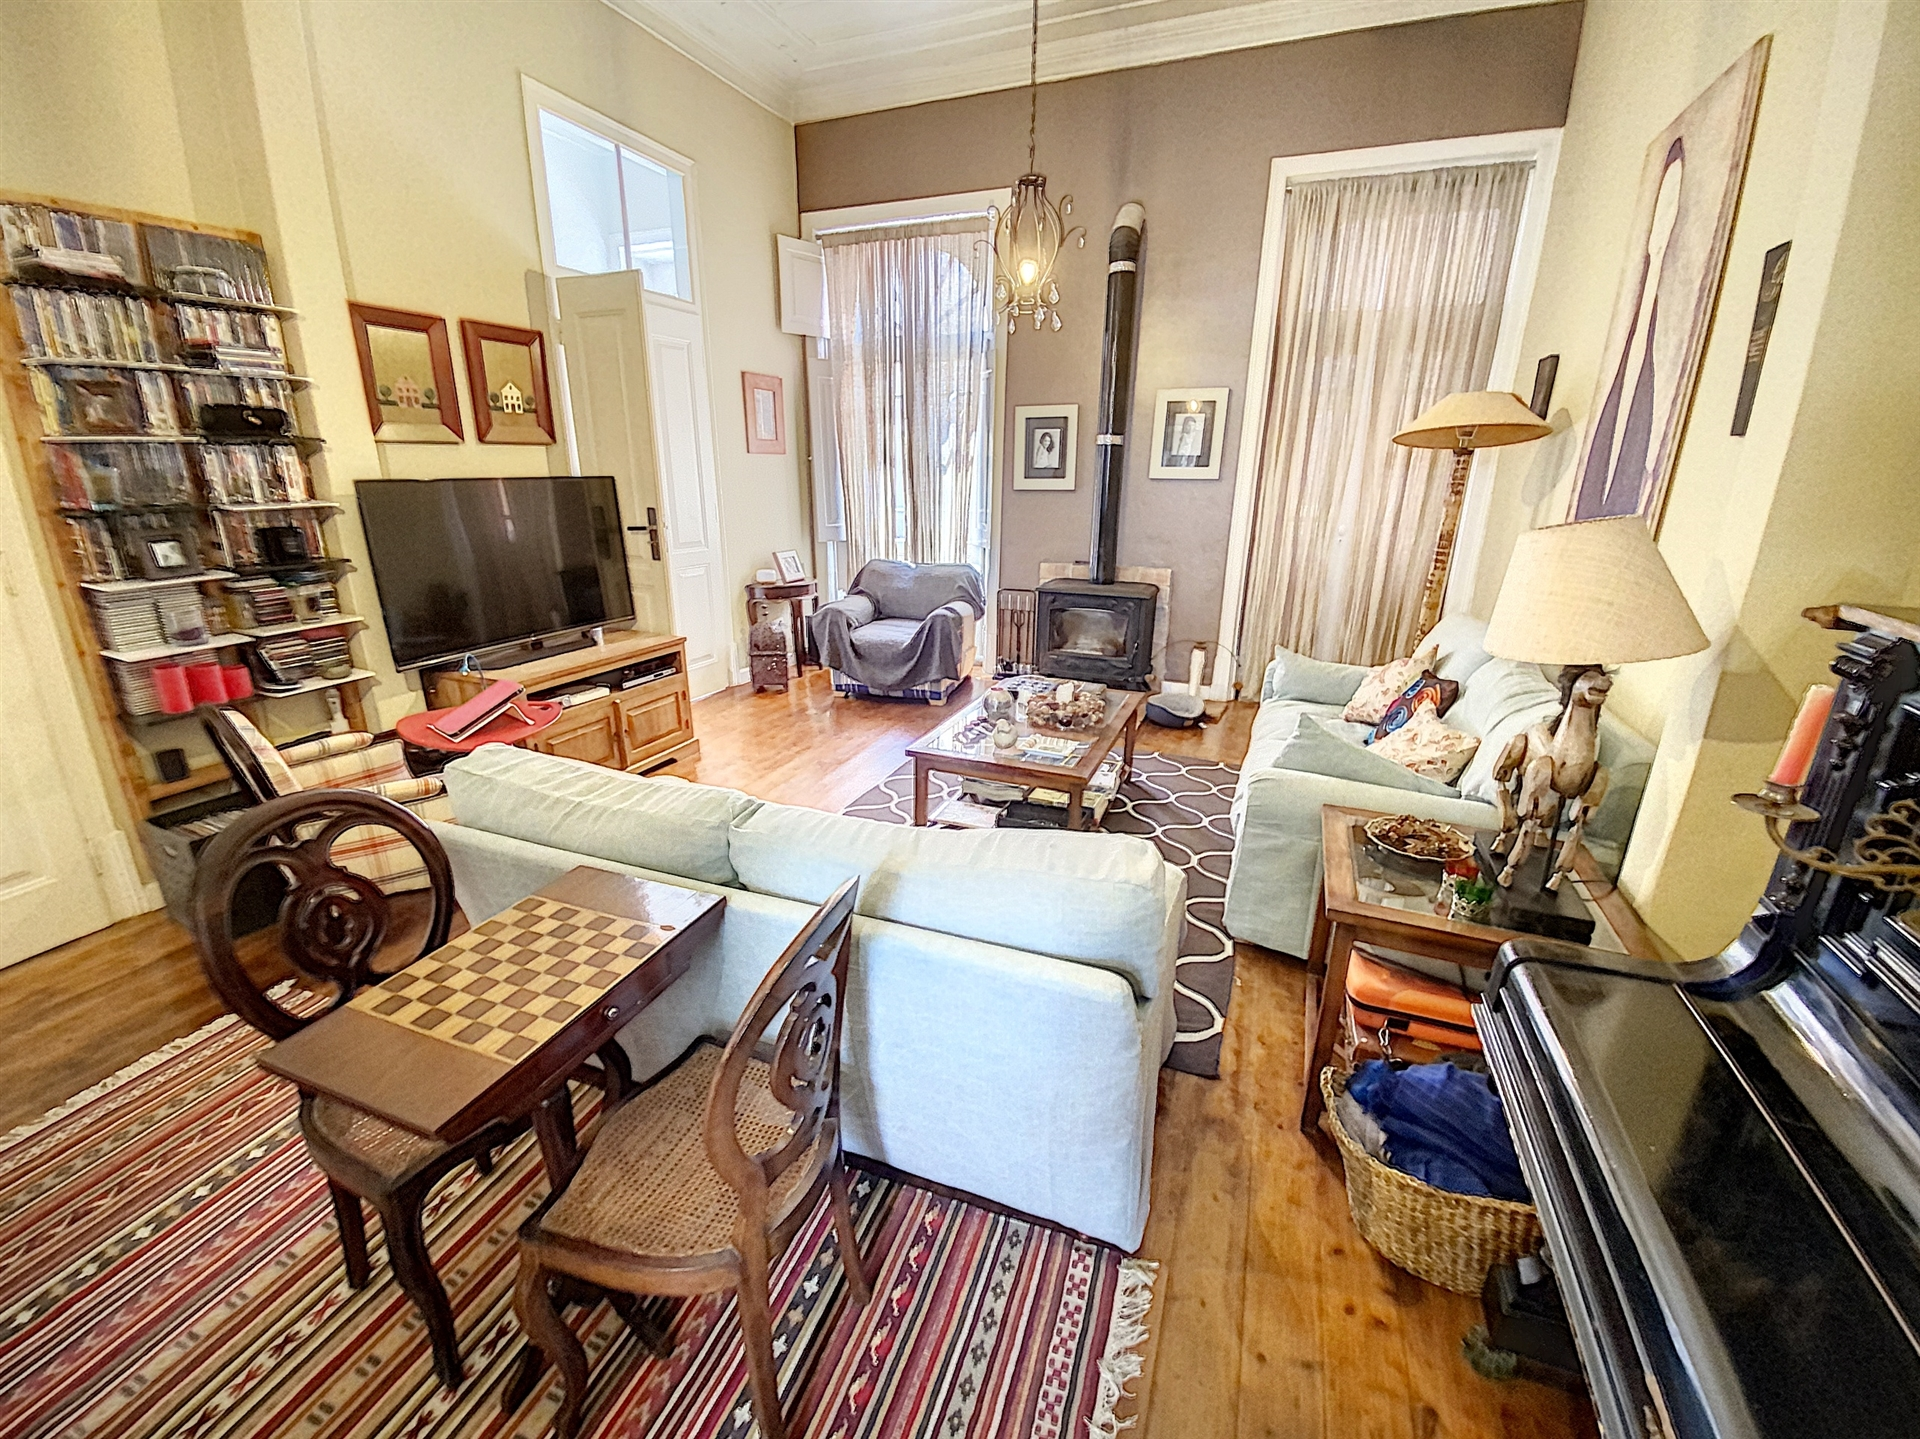 House for sale in the historic center